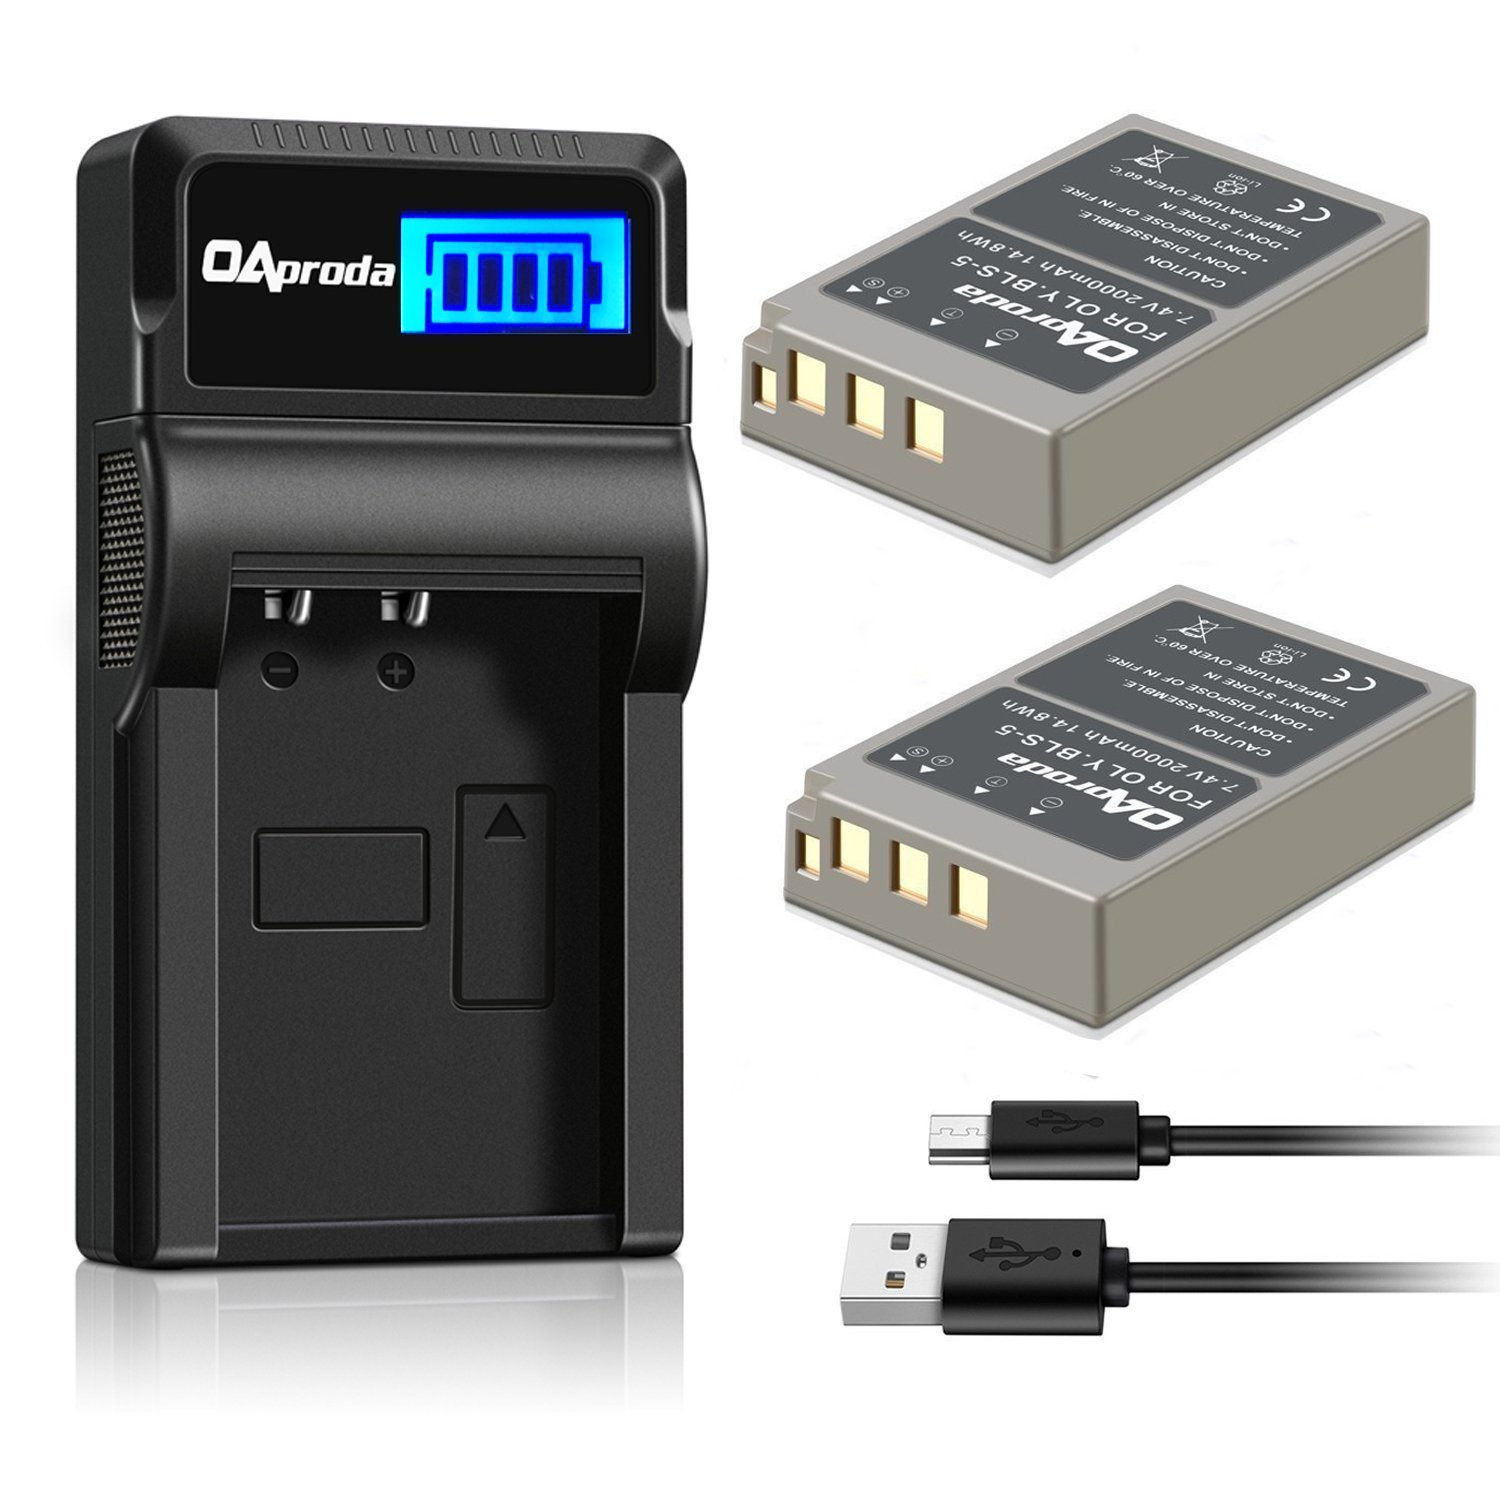 OAproda BLS-5 Batteries (2 Pack) and LCD USB Charger for Olympus BLS-5, BLS-50, PS-BLS5 and Olympus OM-D E-M10 III, E-M10 II, E-M10, PEN E-PL9, E-PL8, E-PL2, E-PL3, E-PL6, E-P3, E-PM1, E-PM2, Stylus 1 by OAproda (Image #1)